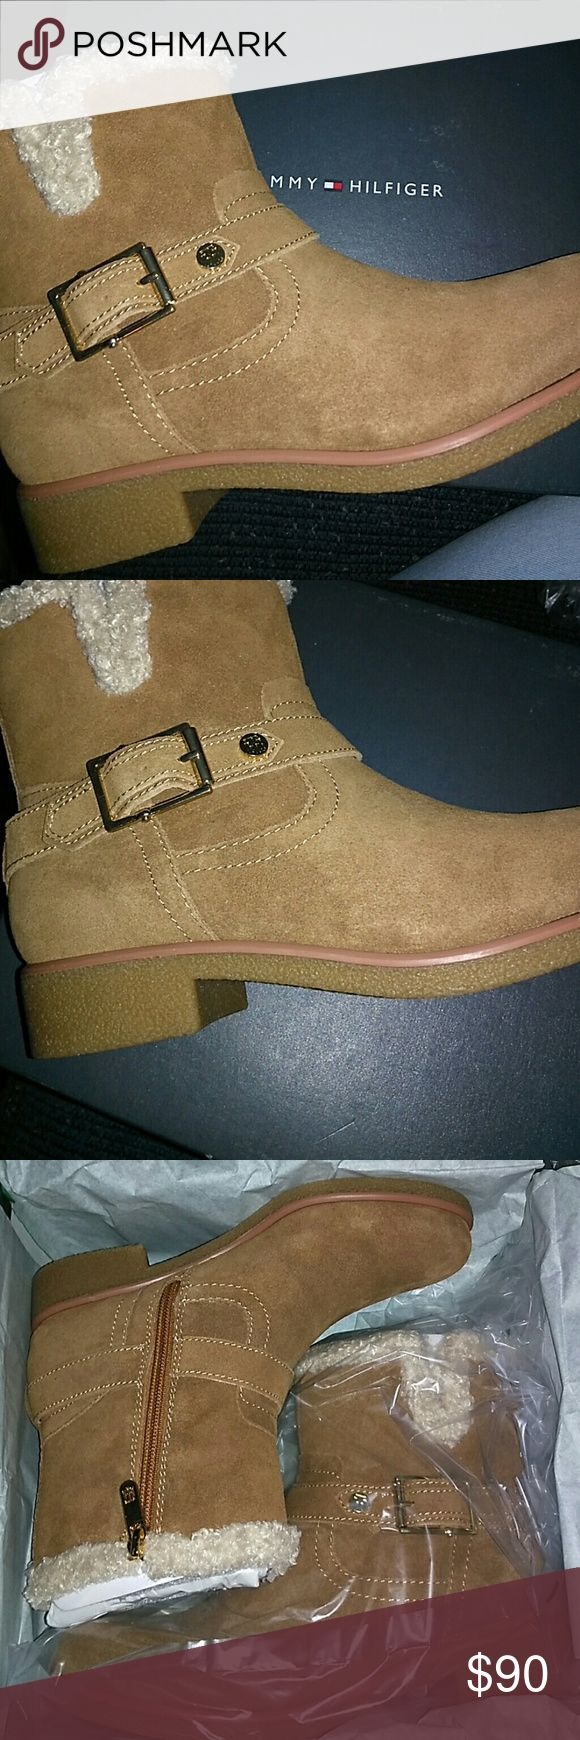 Tommy Hilfiger Boots Brown boots never worn excellent condition Tommy Hilfiger Shoes Winter & Rain Boots